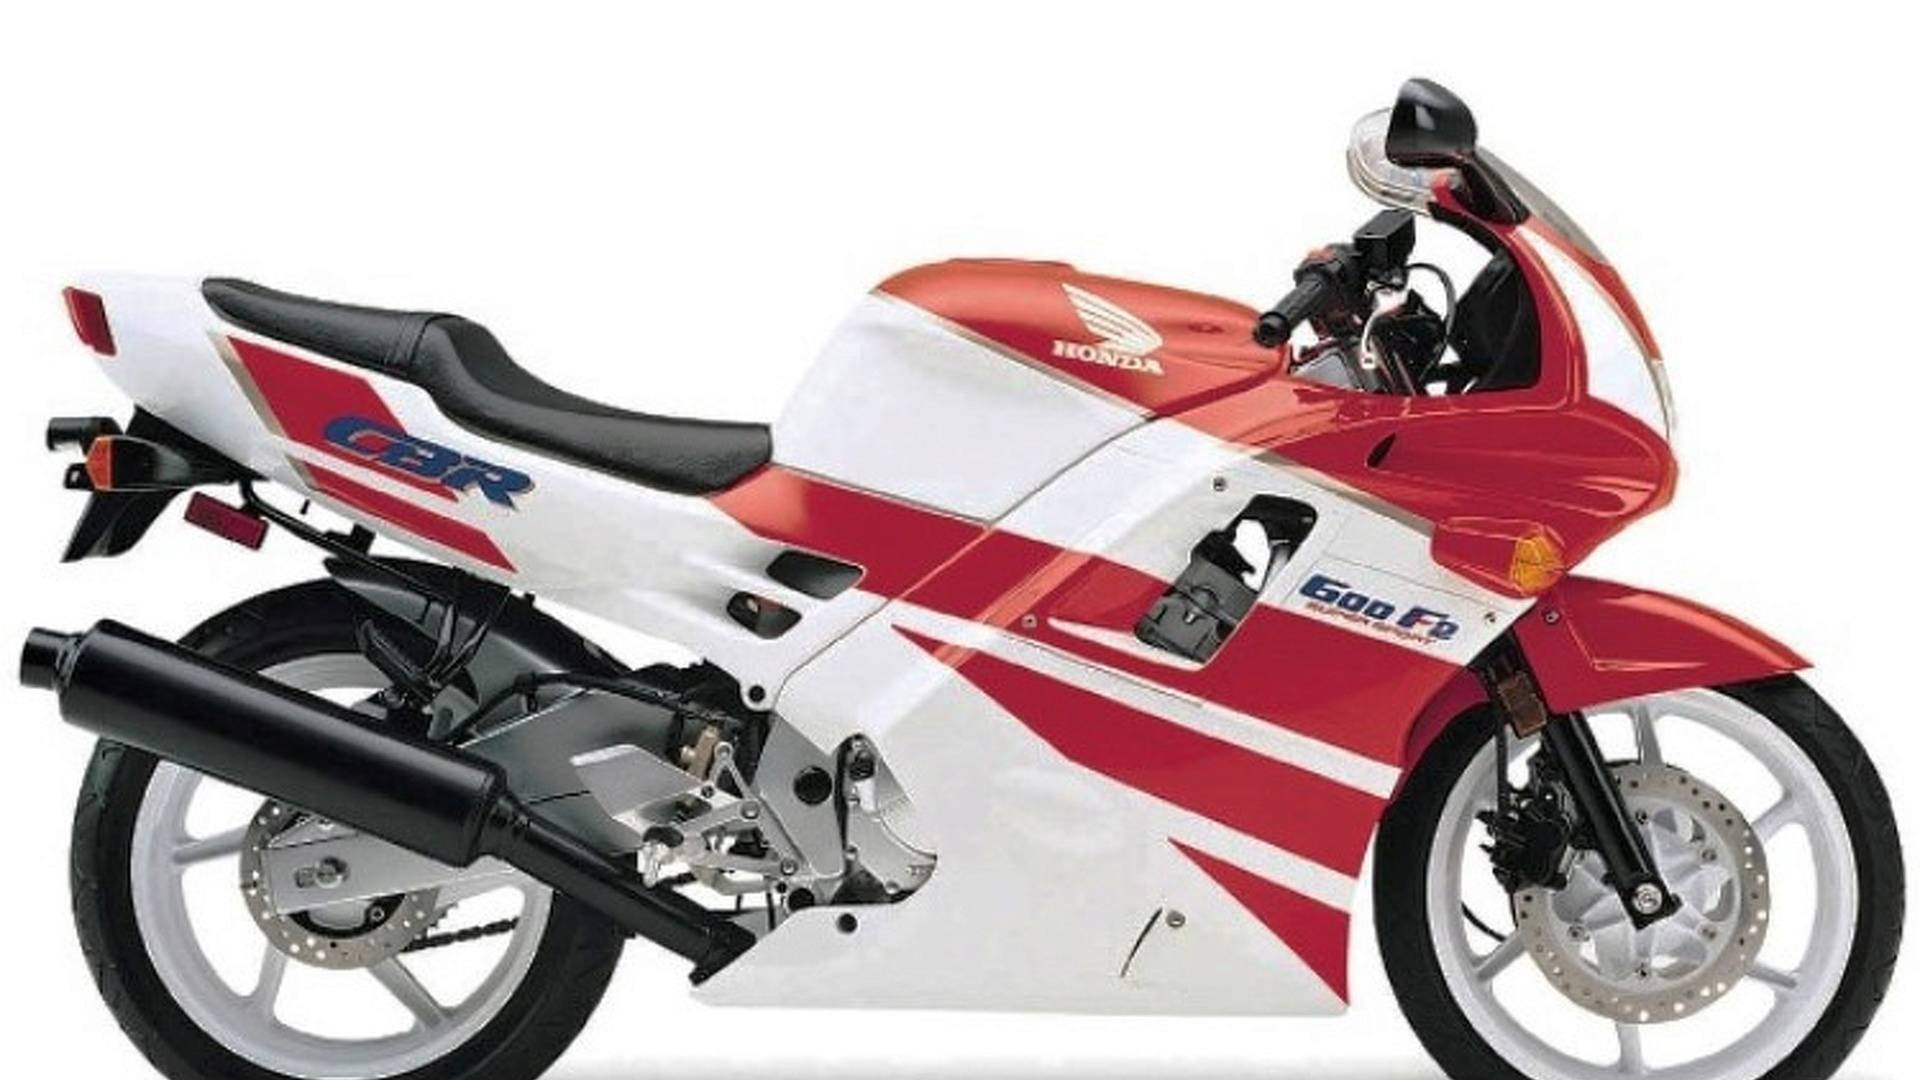 Honda 600 Supersport History From 500 Four To 600rr